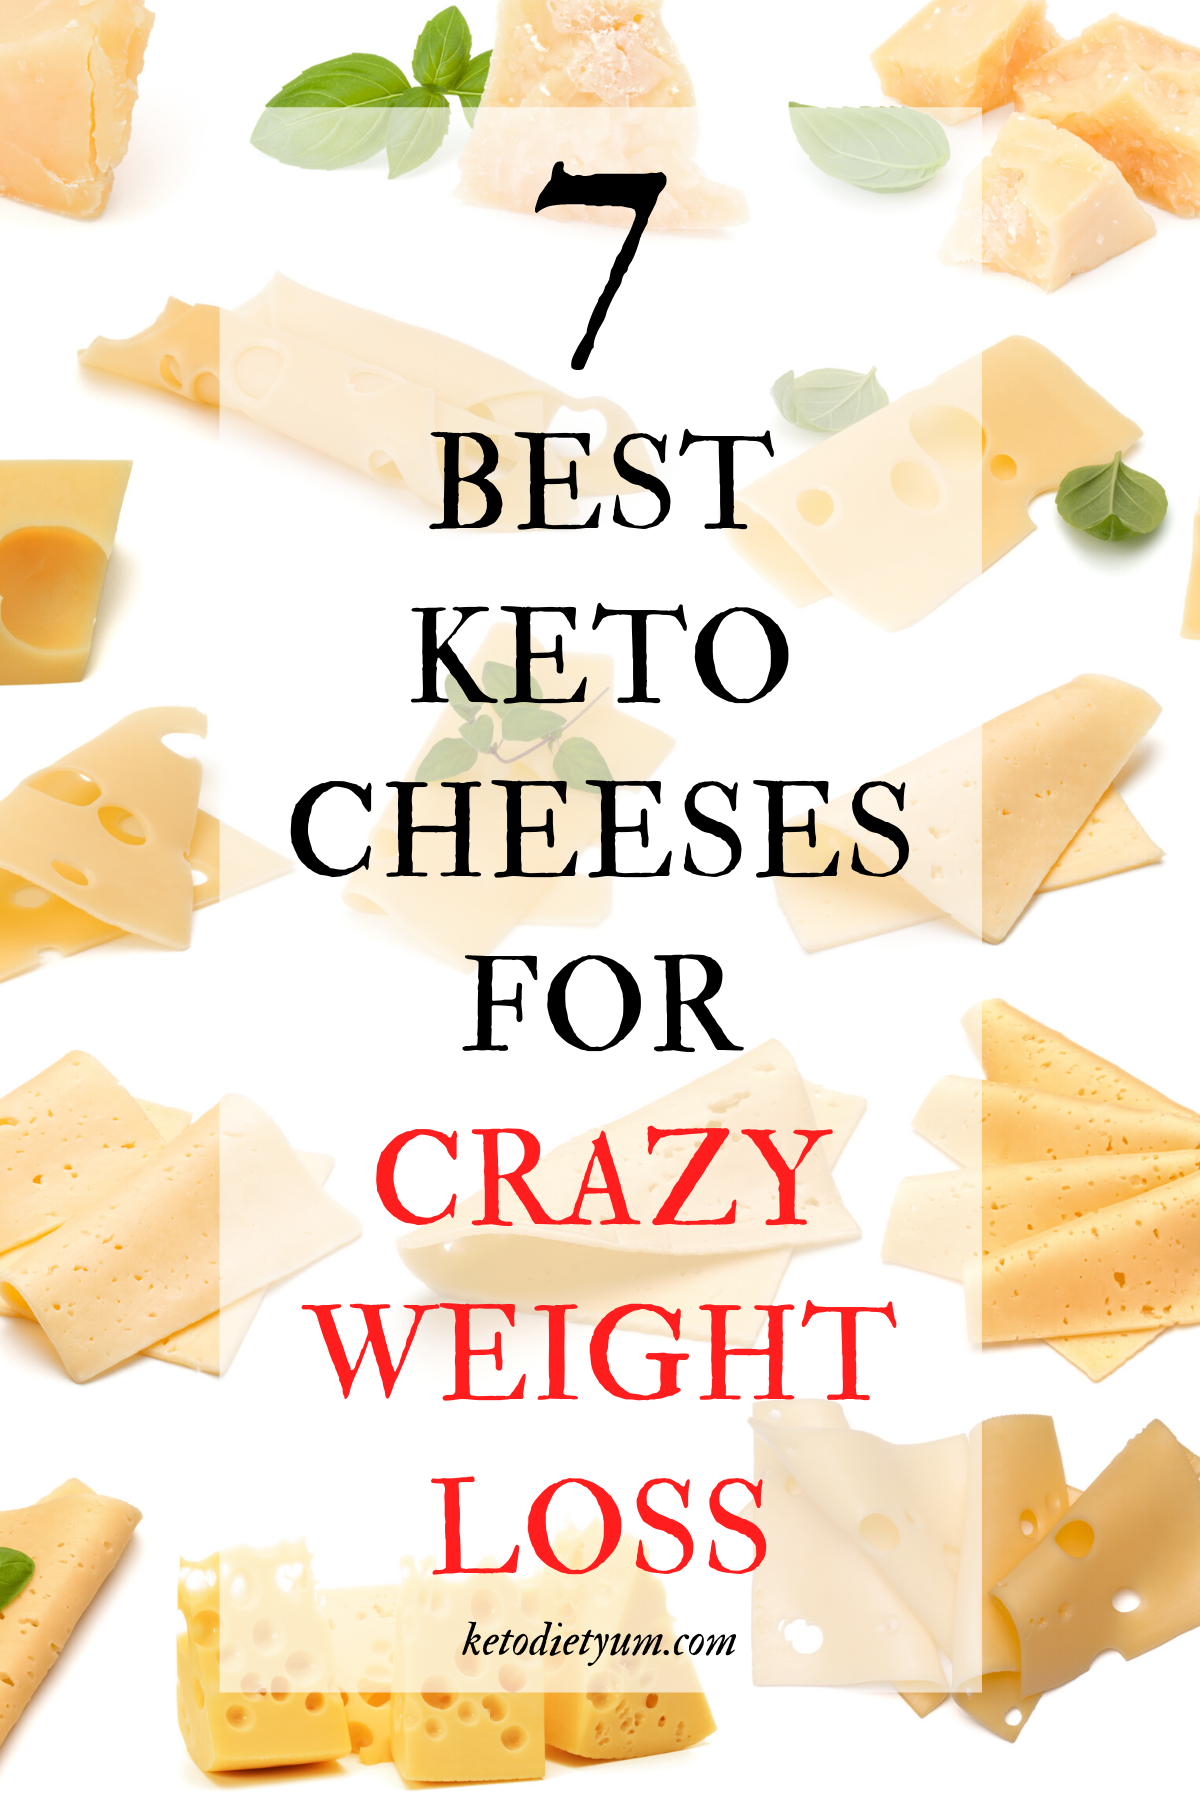 cheese on keto diet